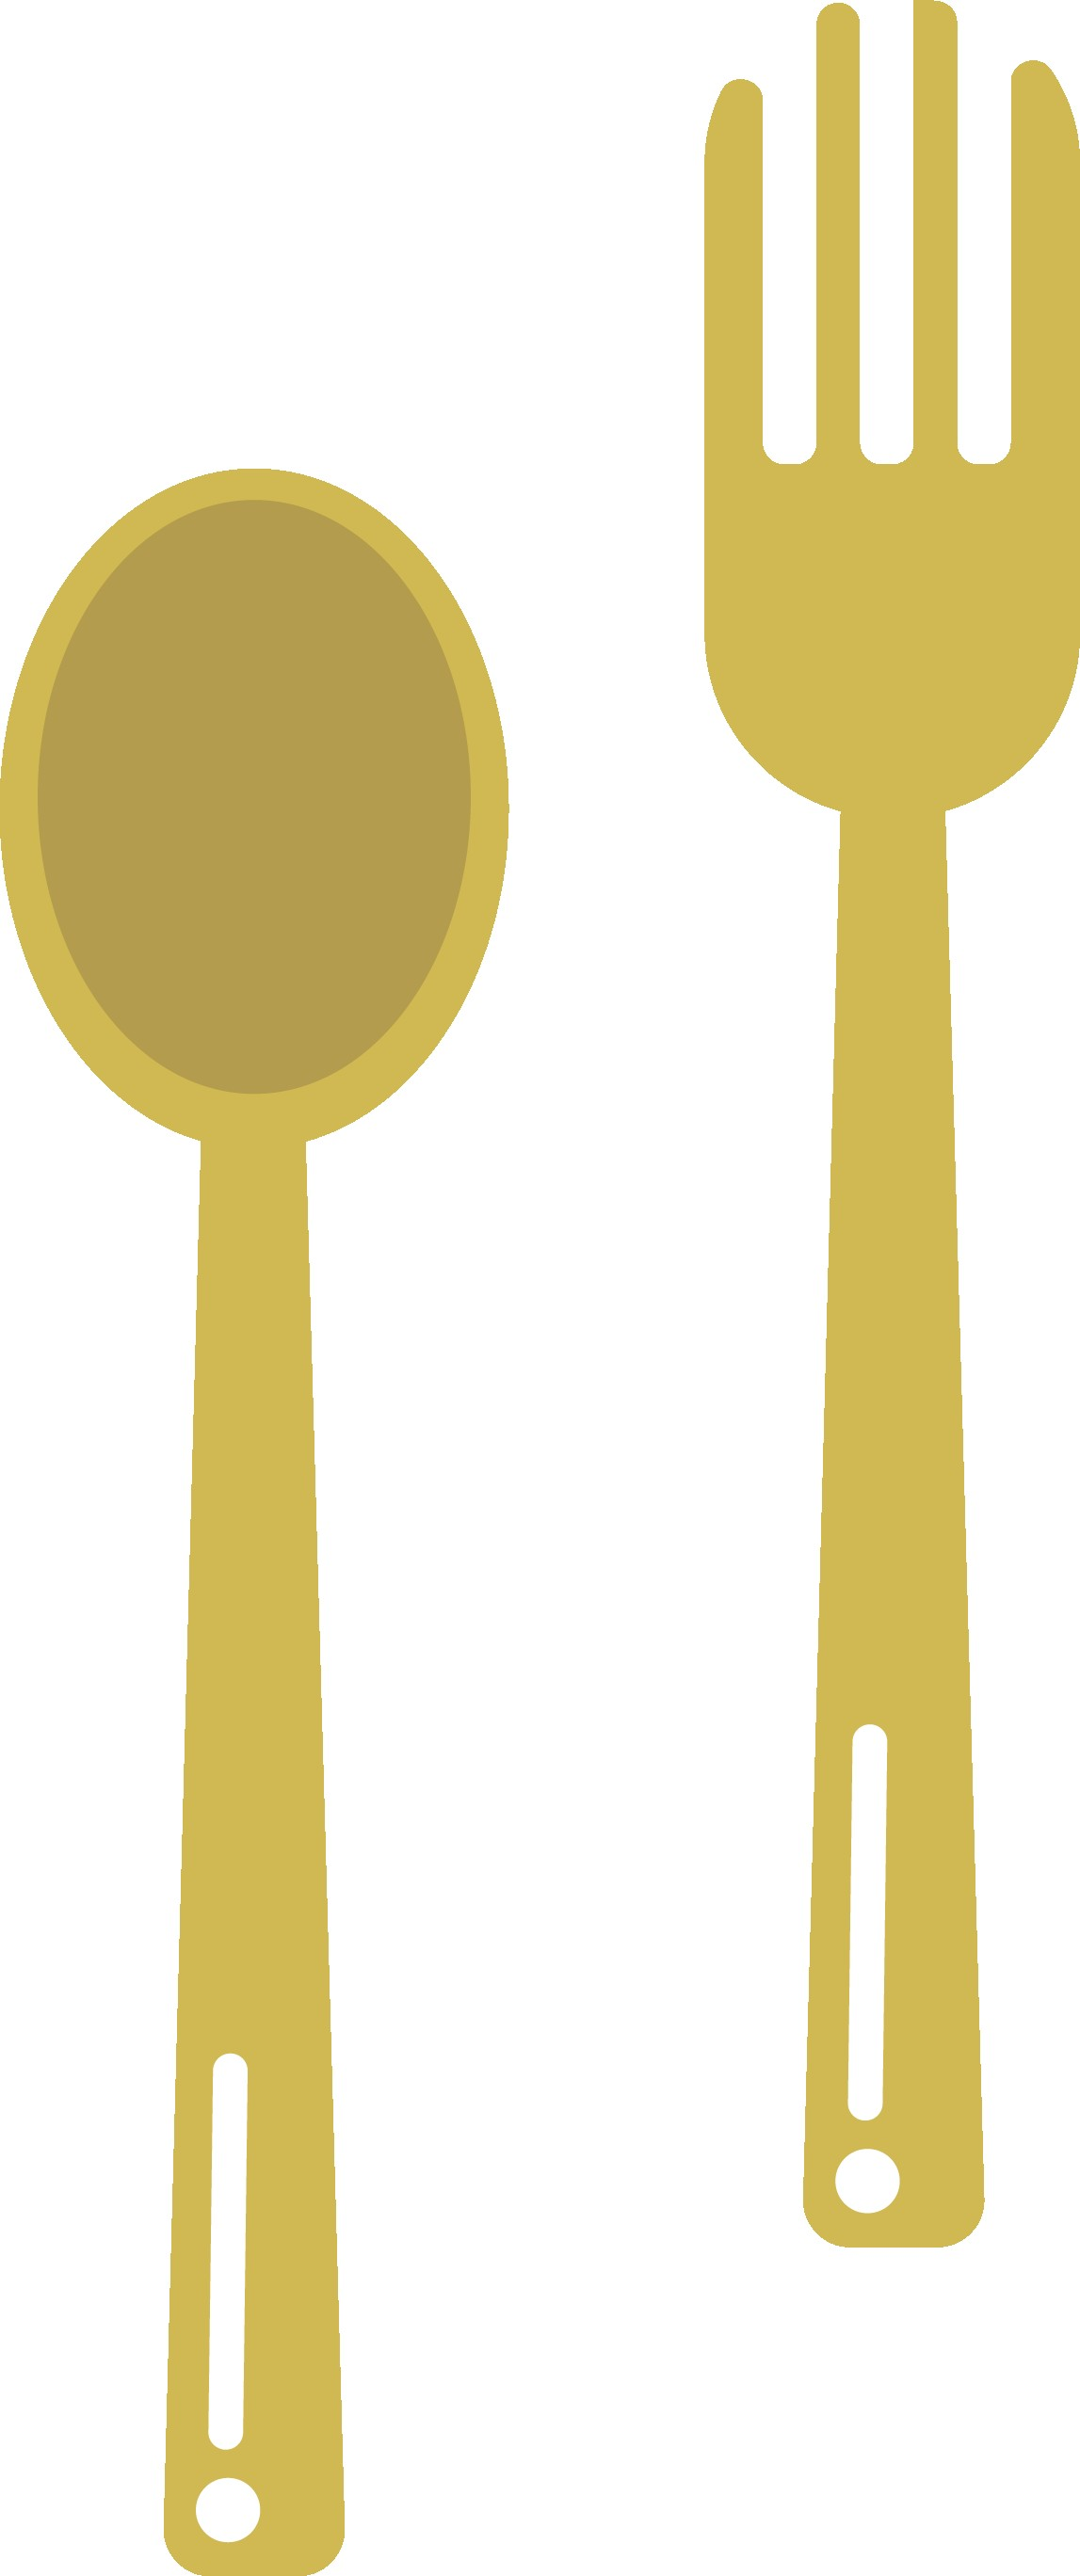 1147x2737 Vintage Cutlery Clipart Black And White Clip Art Old Fashioned